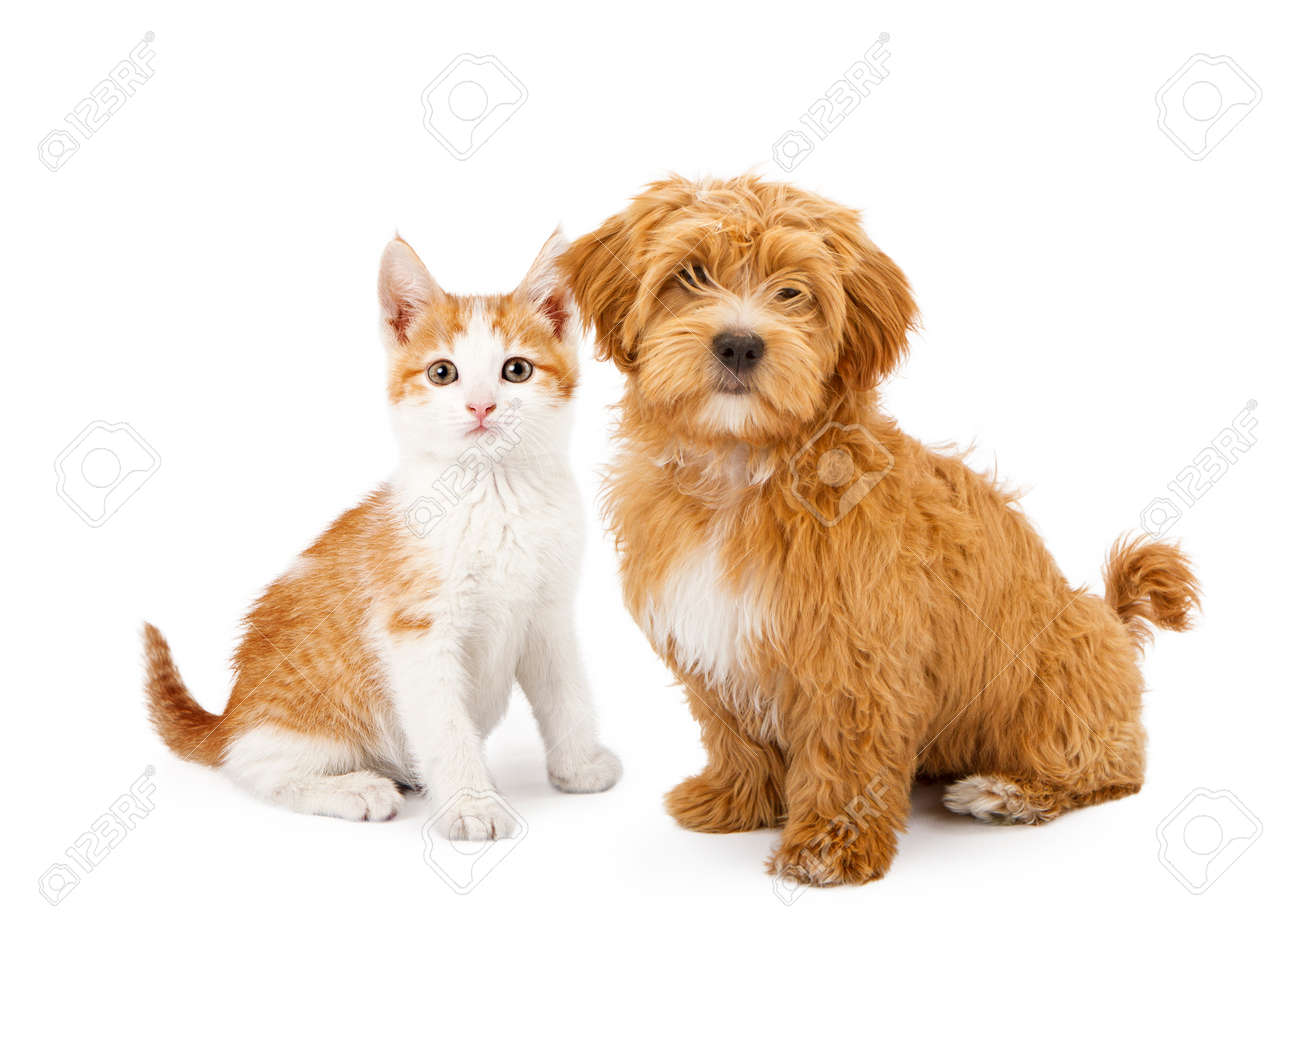 Cat stock photos royalty free business images a cute little havanese puppy and an orange tabby kitten sitting together voltagebd Images